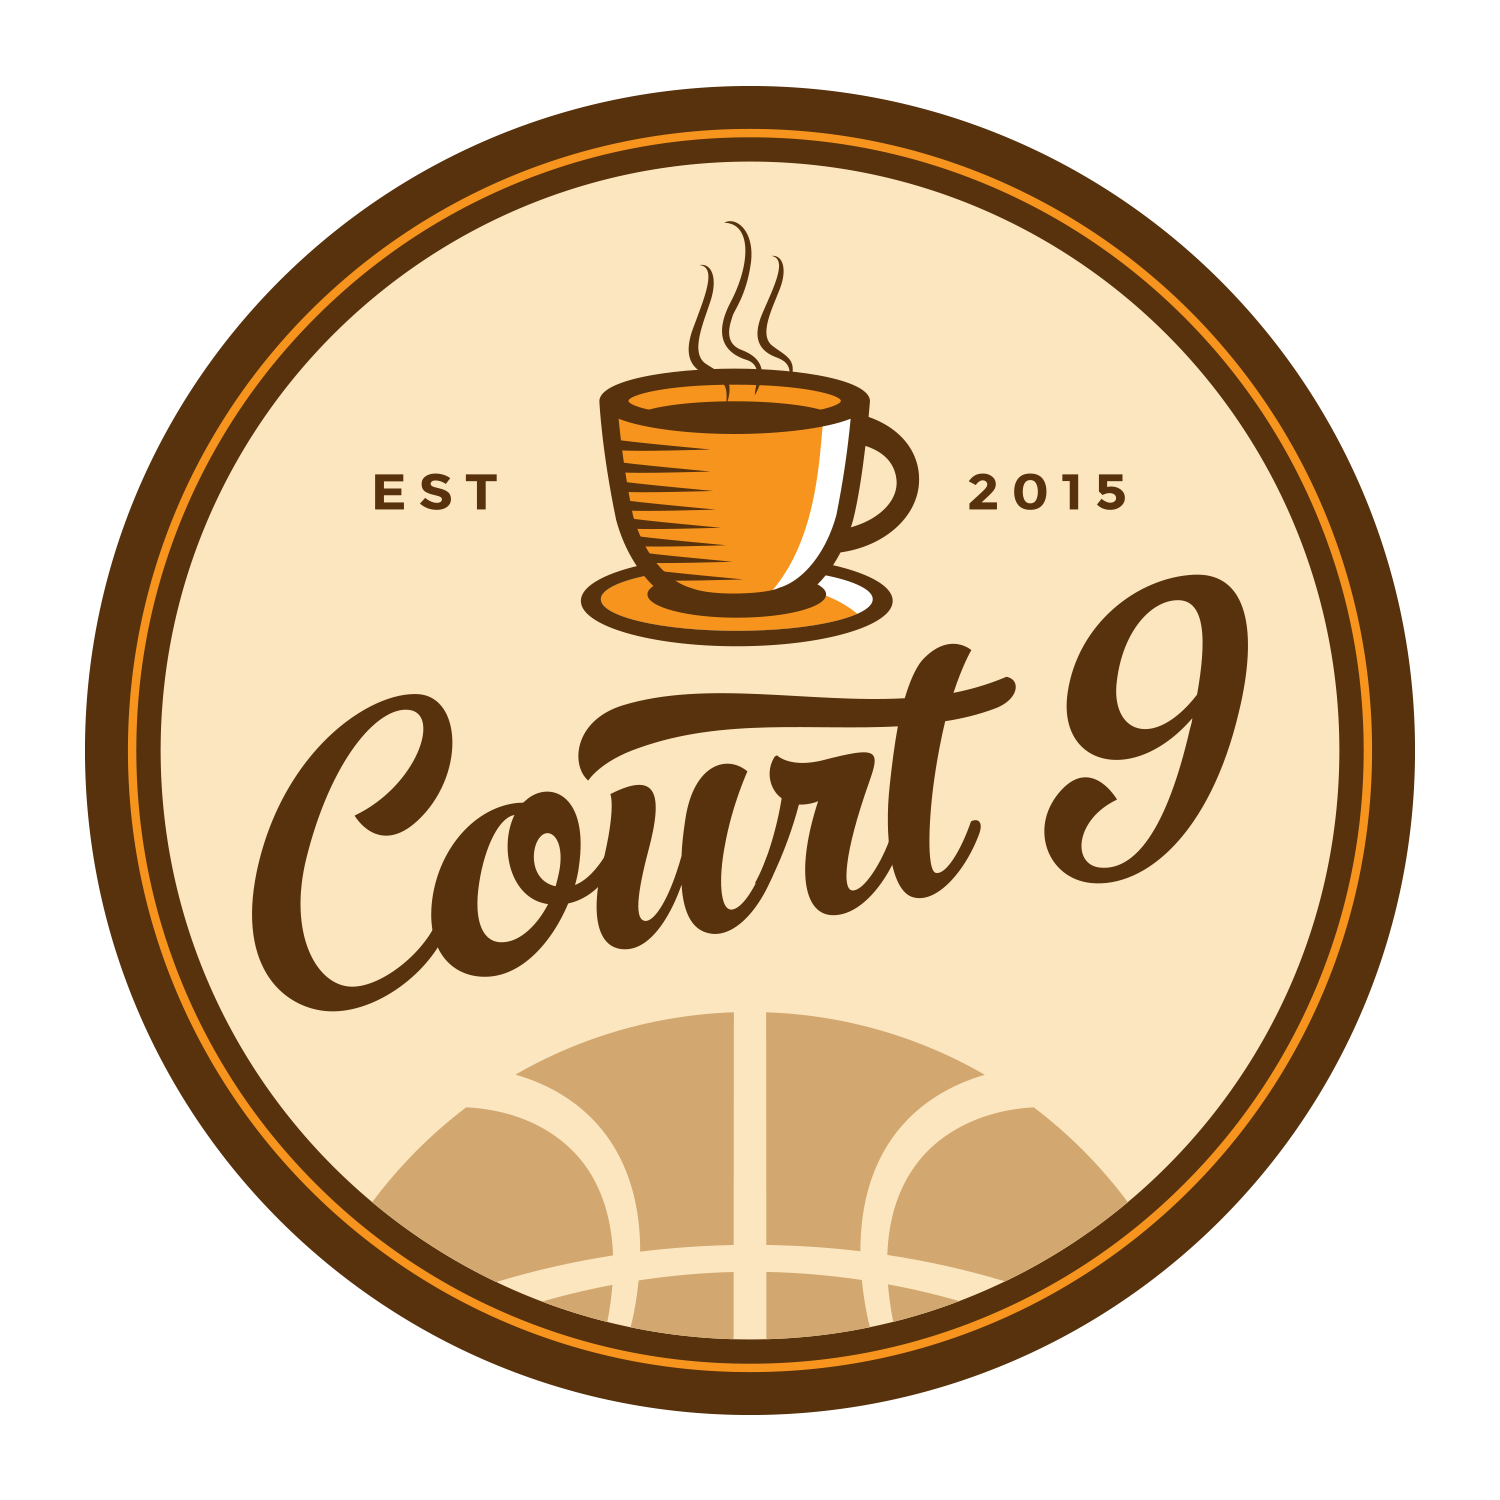 Cafe Logo within a Basketball Stadium